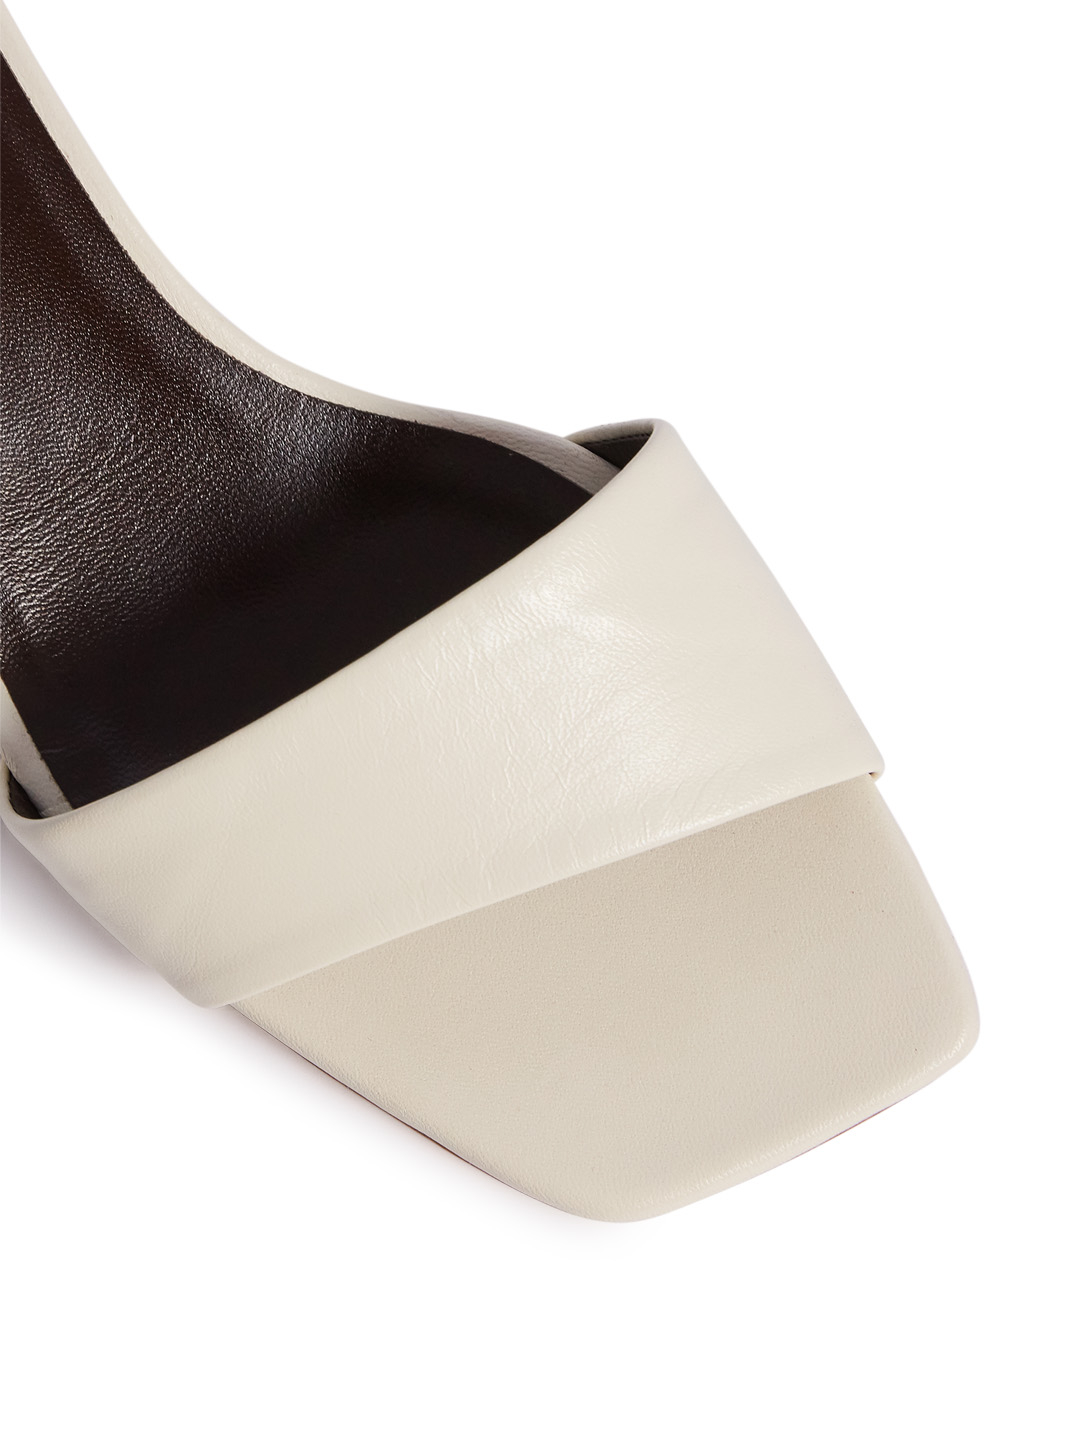 THE ROW Chocolate Leather Mules Women's White